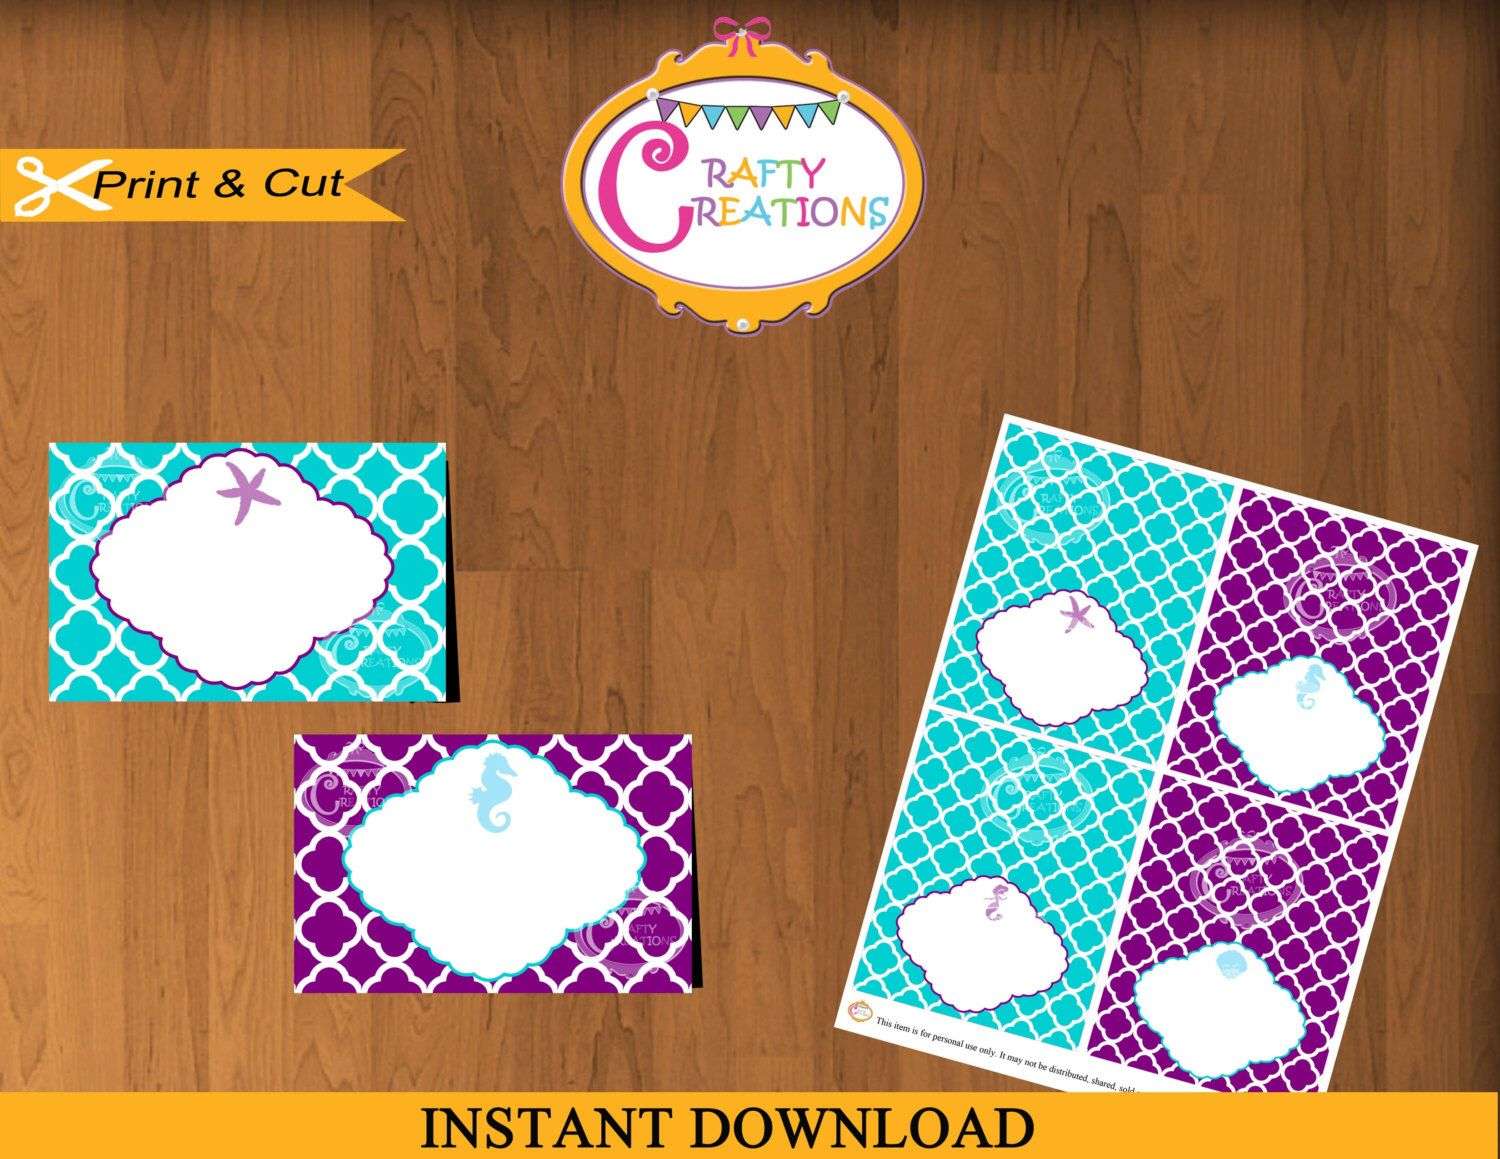 Mermaid Food Label Cards - Mermaid Birthday Party Printable Food Labels - Ariel Inspired Tent Cards  sc 1 st  Pinterest : ariel tent - memphite.com